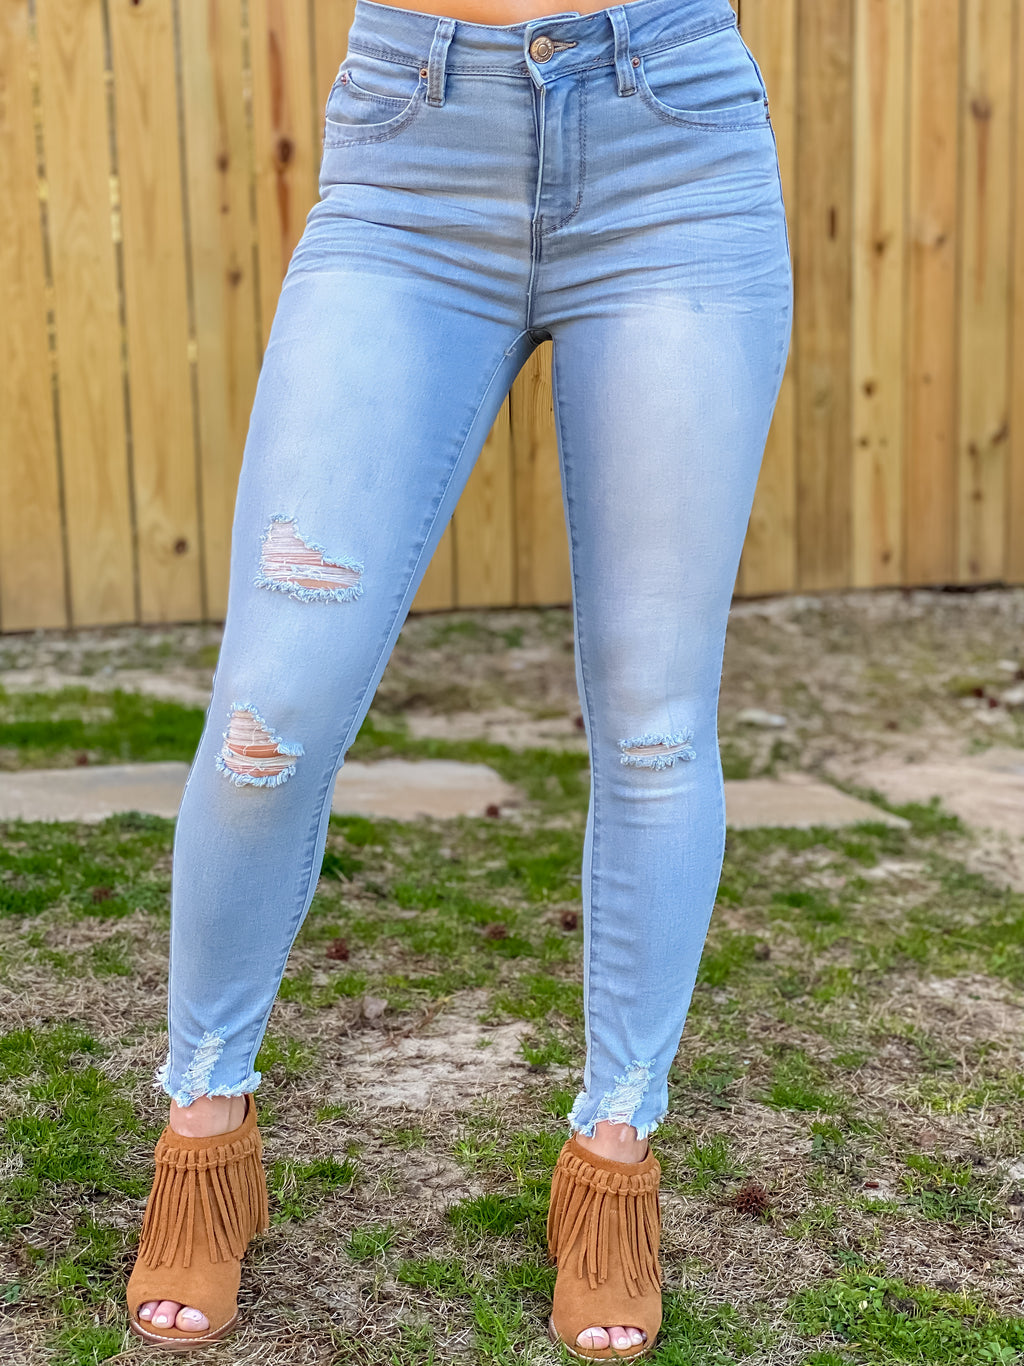 Beautiful Booty Jeans